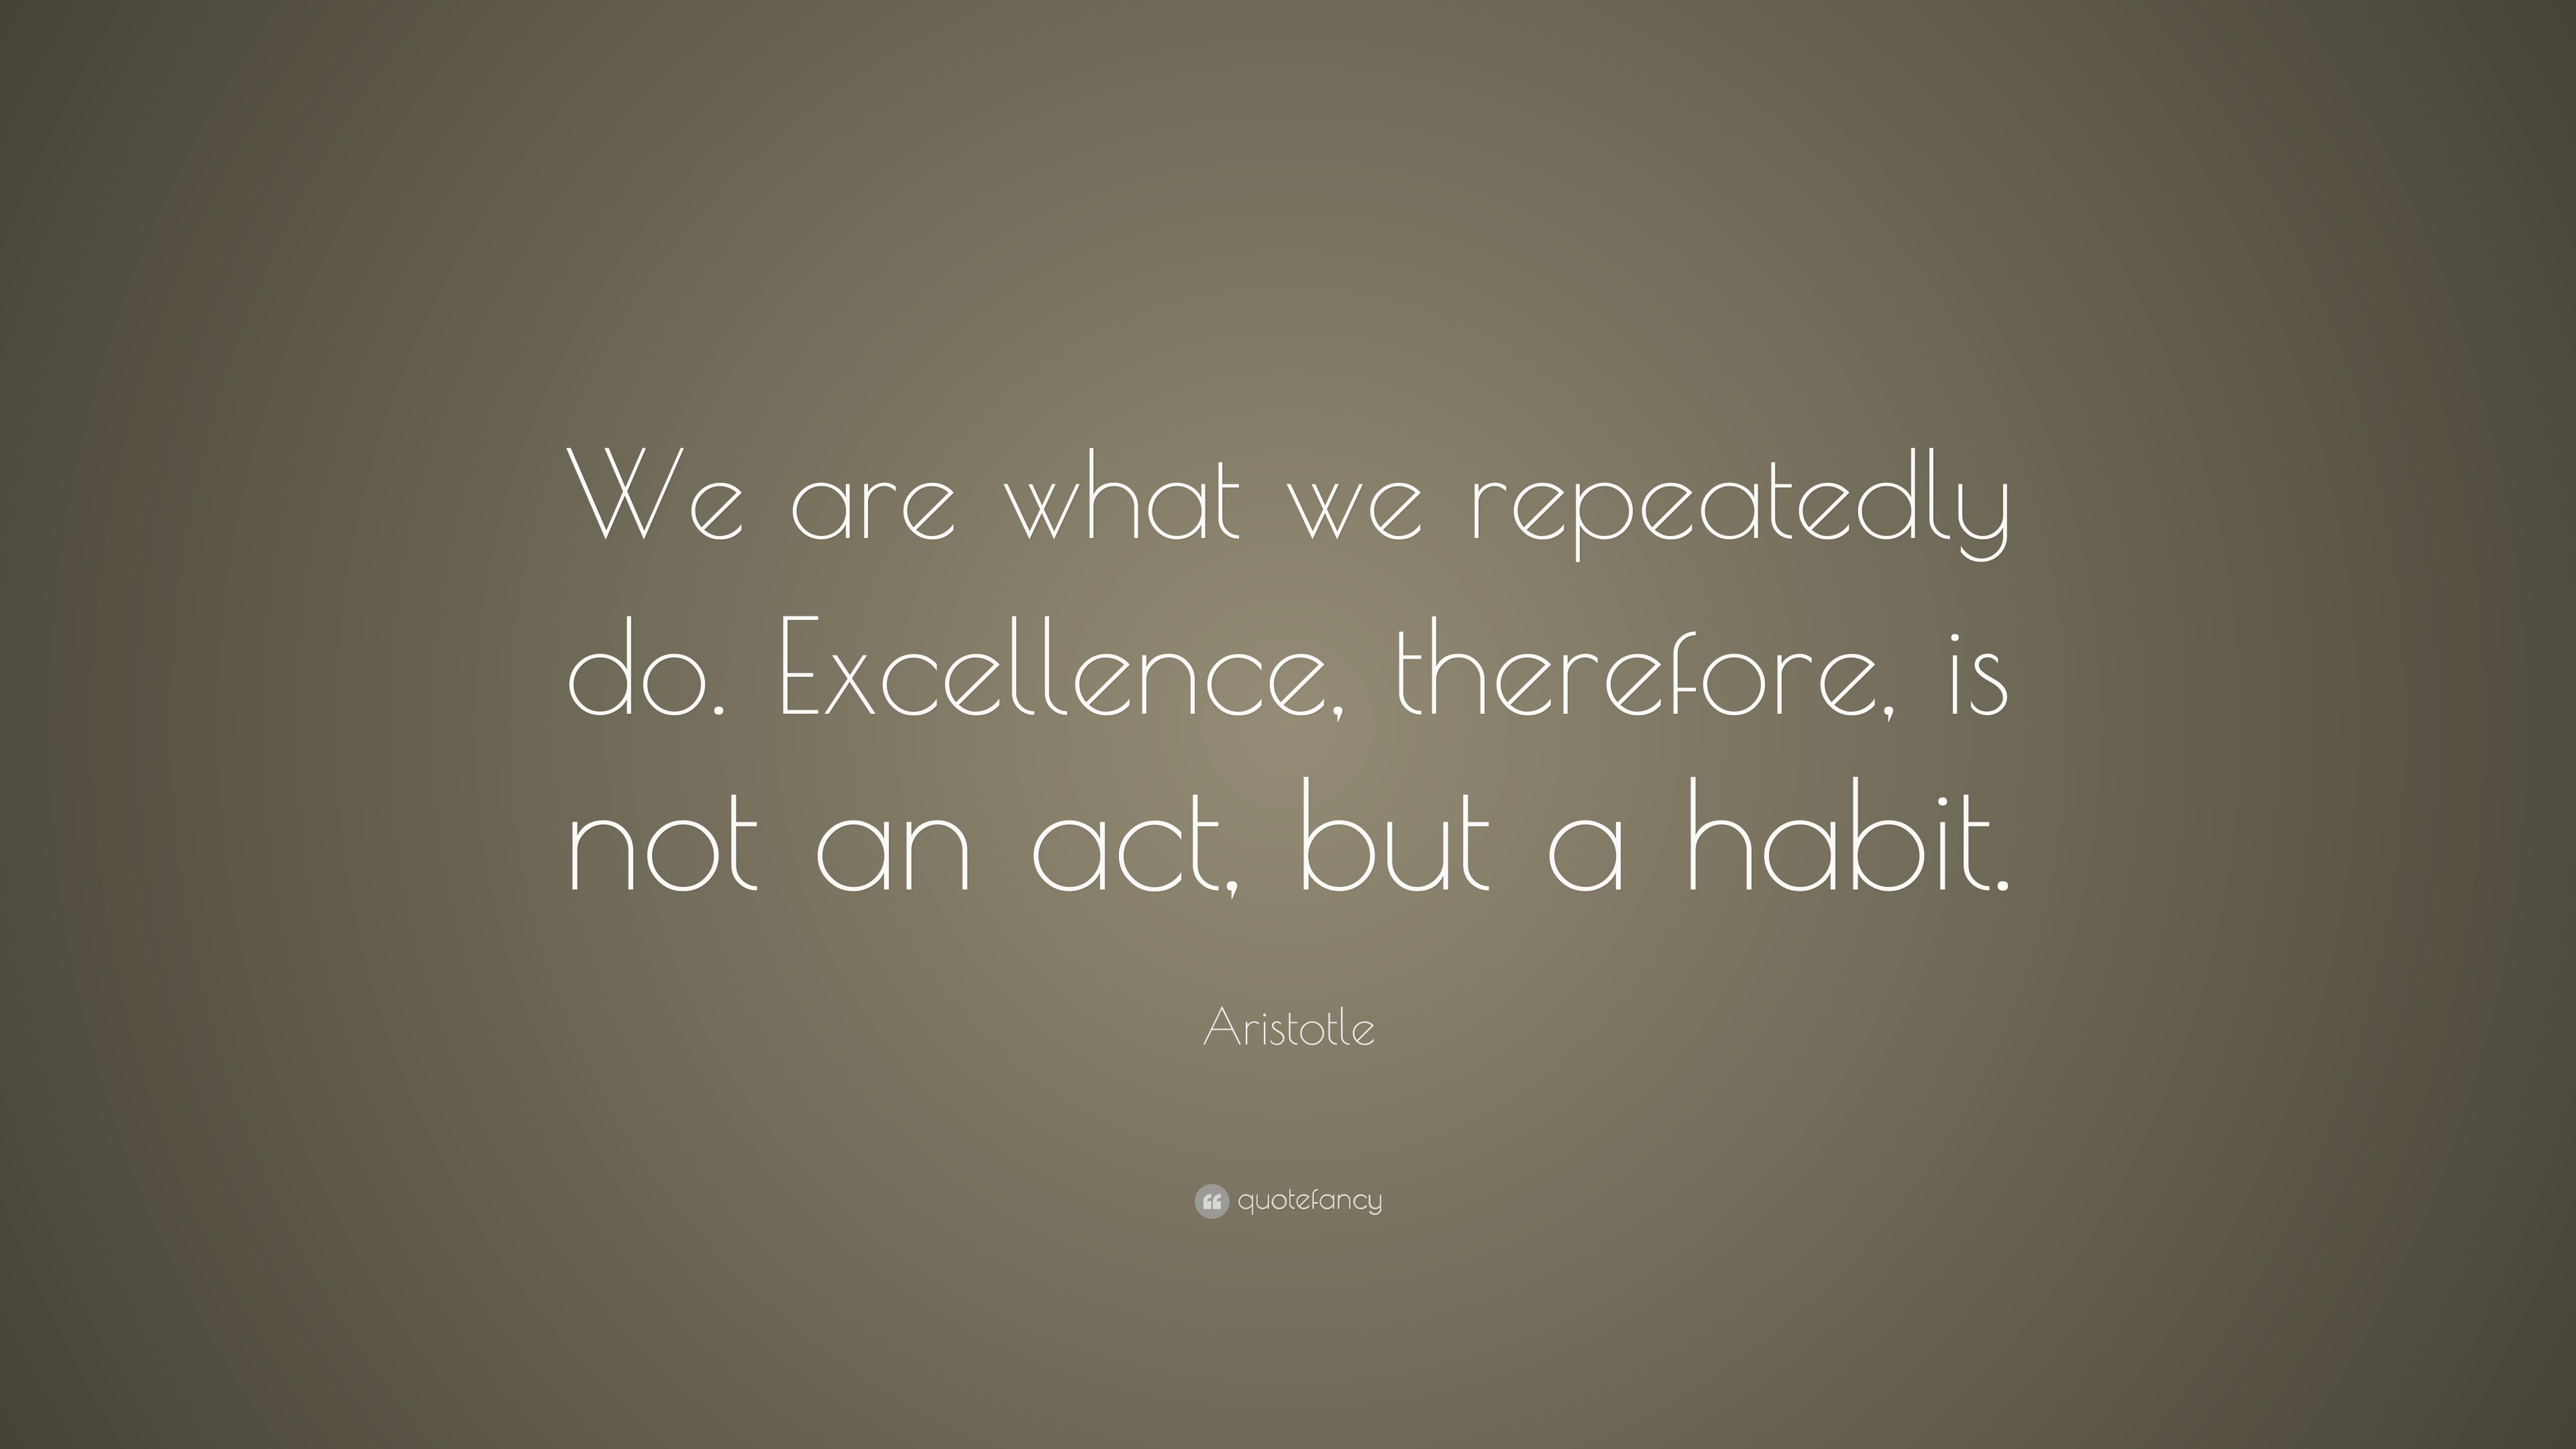 Excellence is a Habit | Image Quotes | Know Your Meme